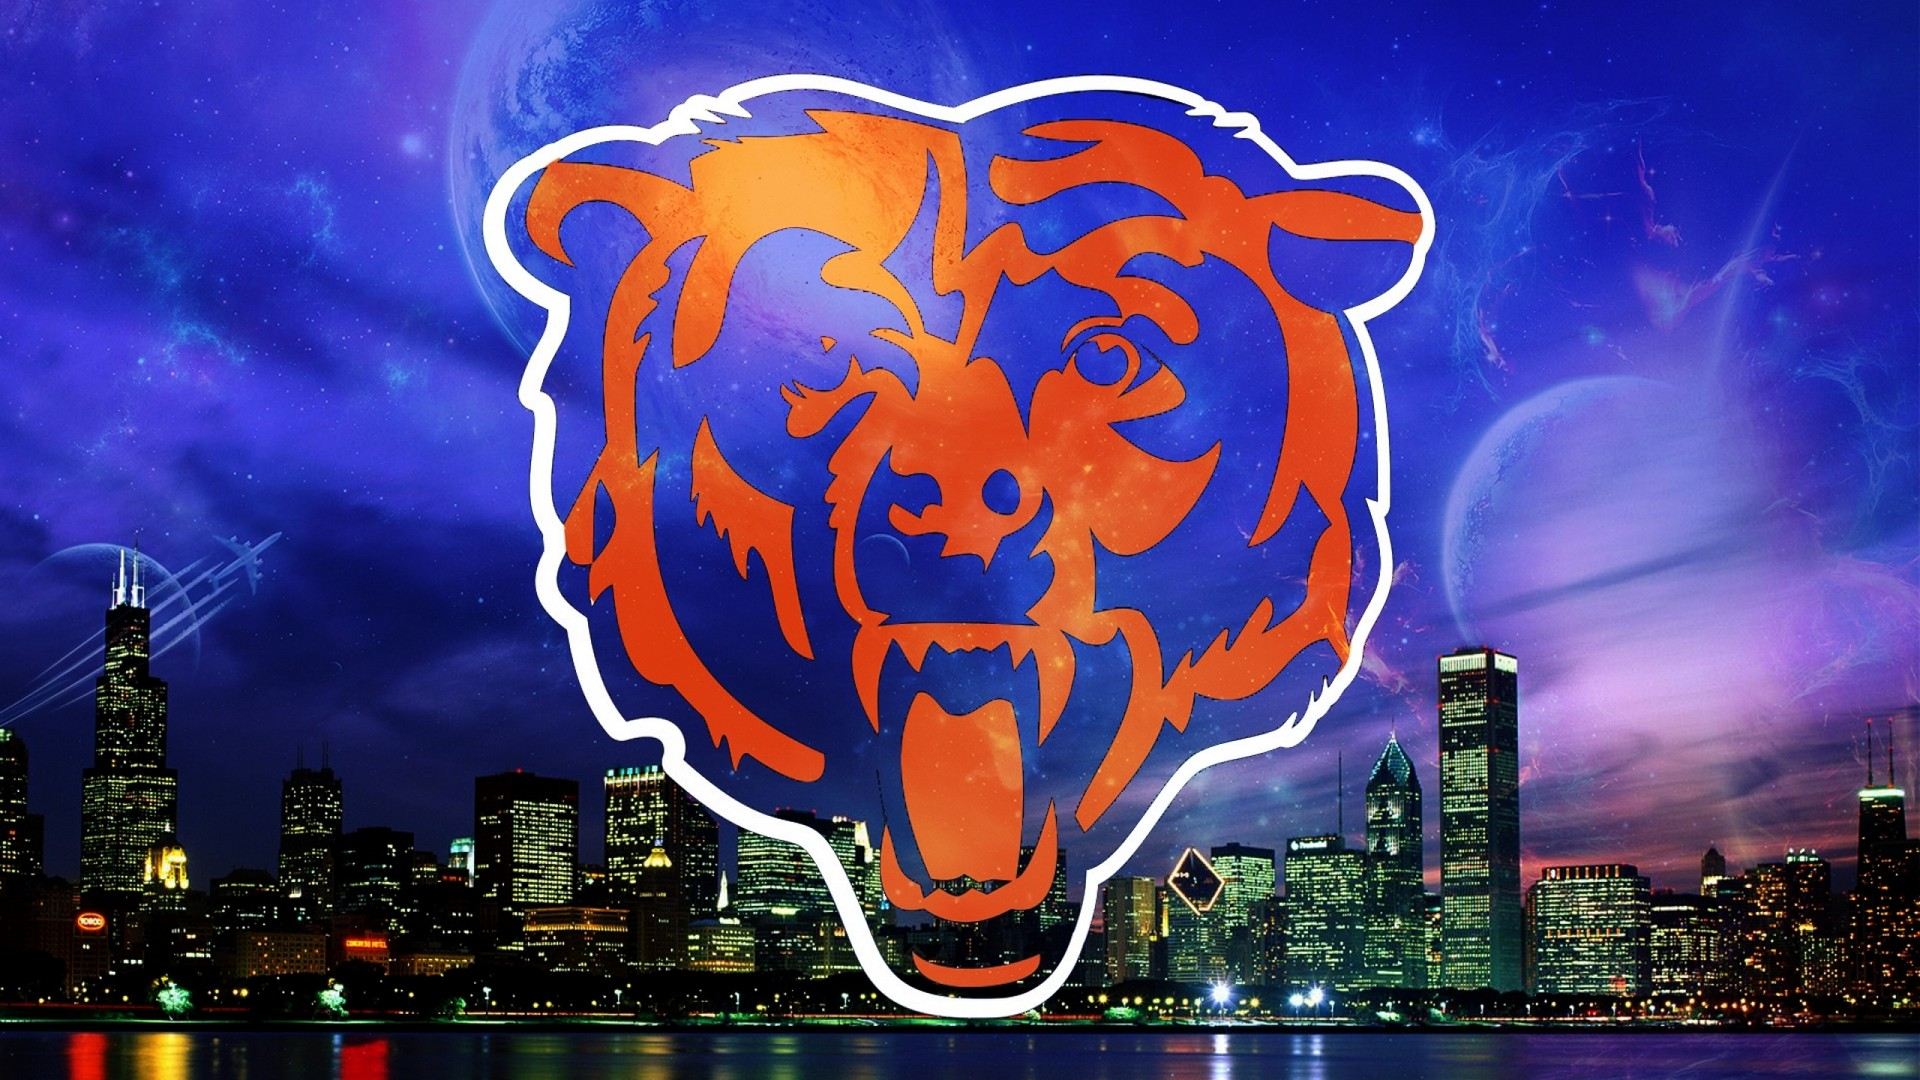 HD Chicago Bears NFL Wallpapers   2021 NFL Football Wallpapers 1920x1080